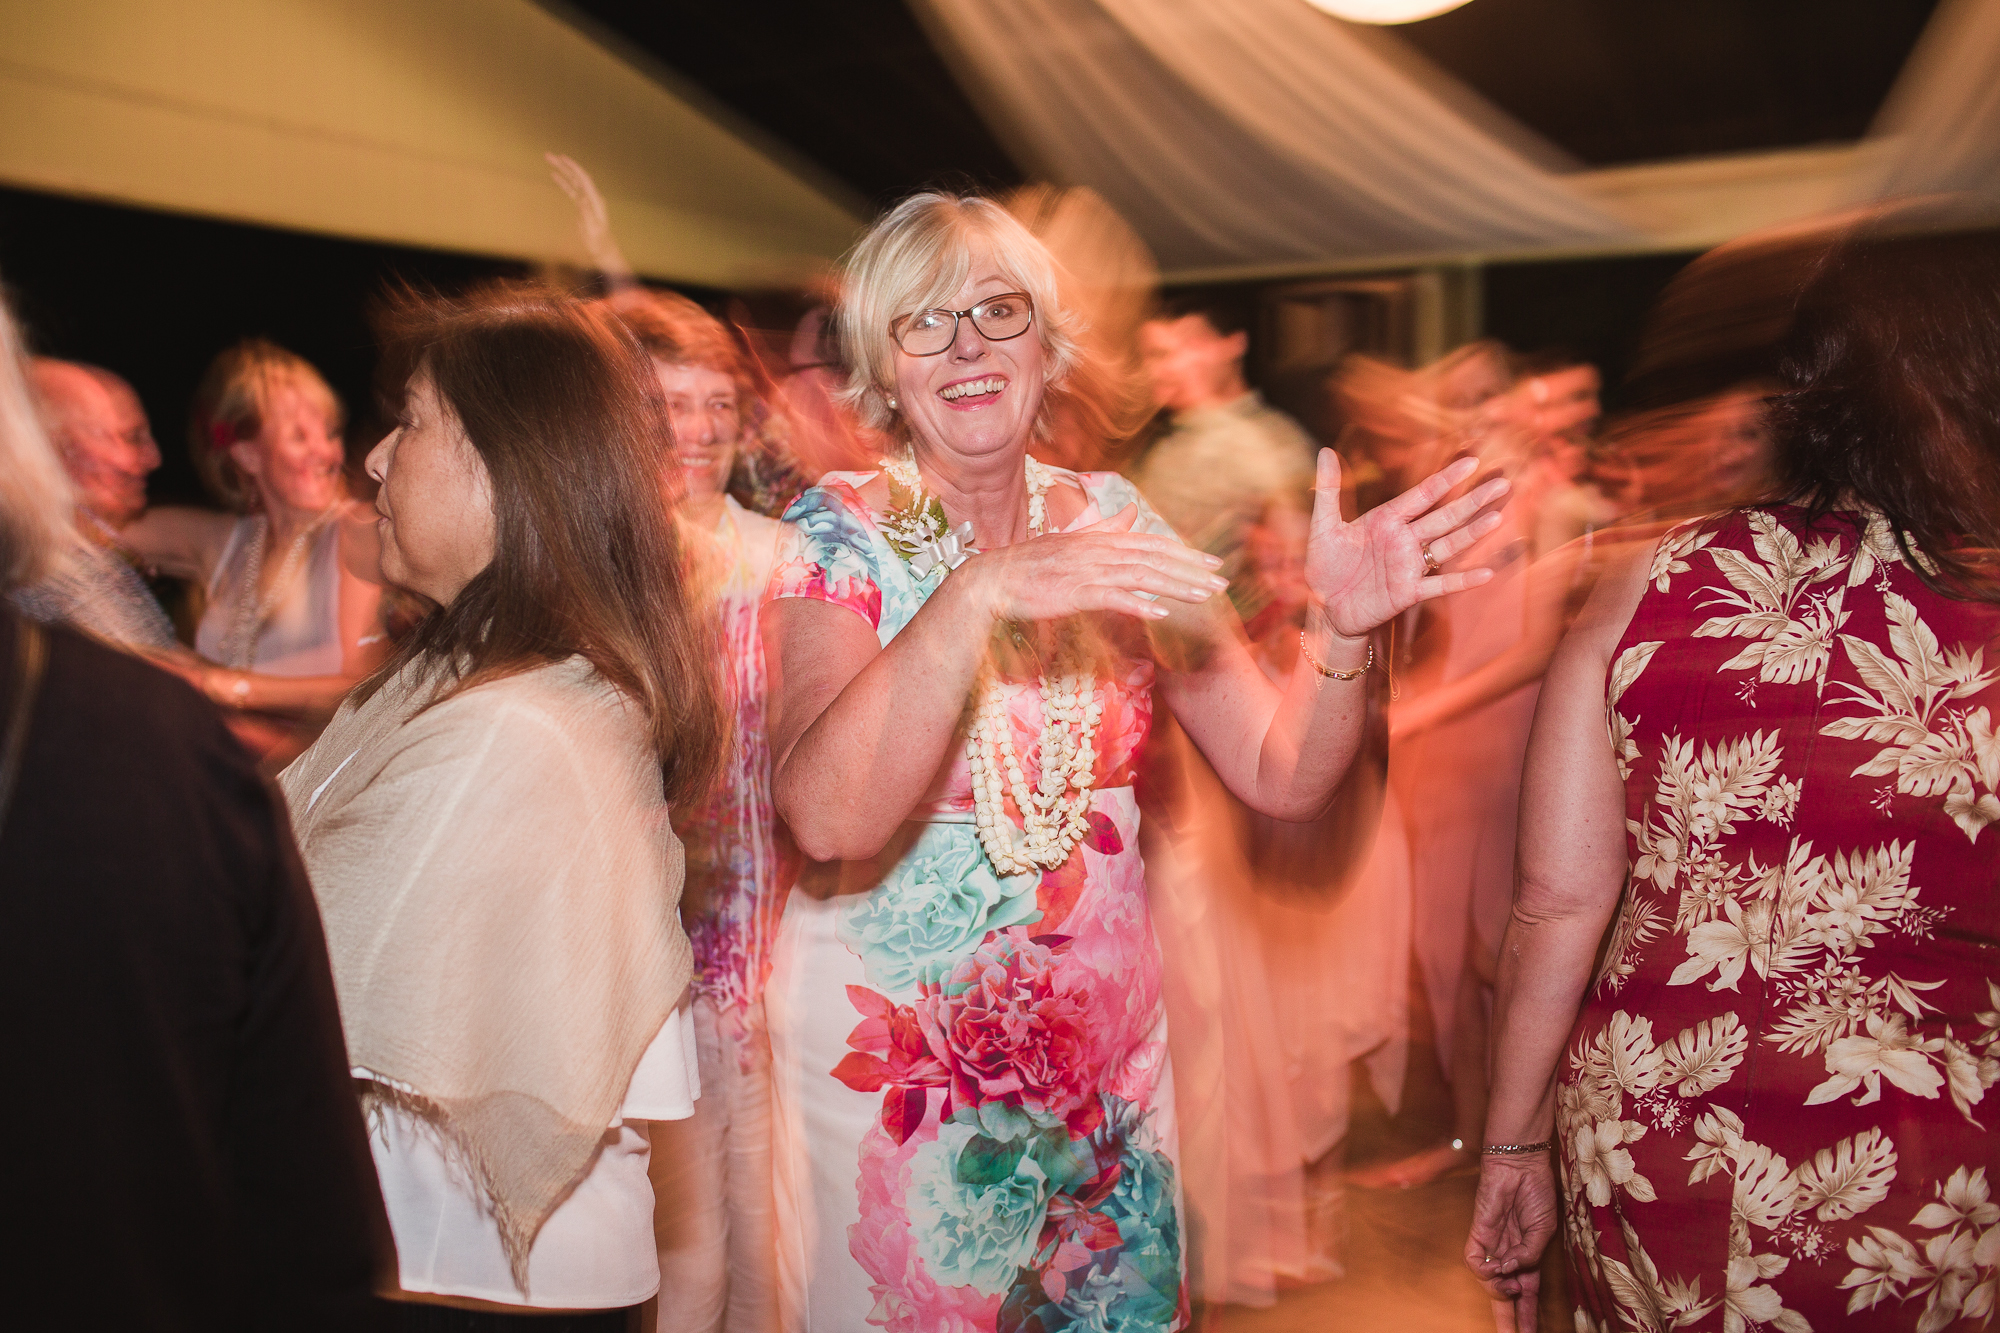 Lucy's mum getting down on the dance floor!